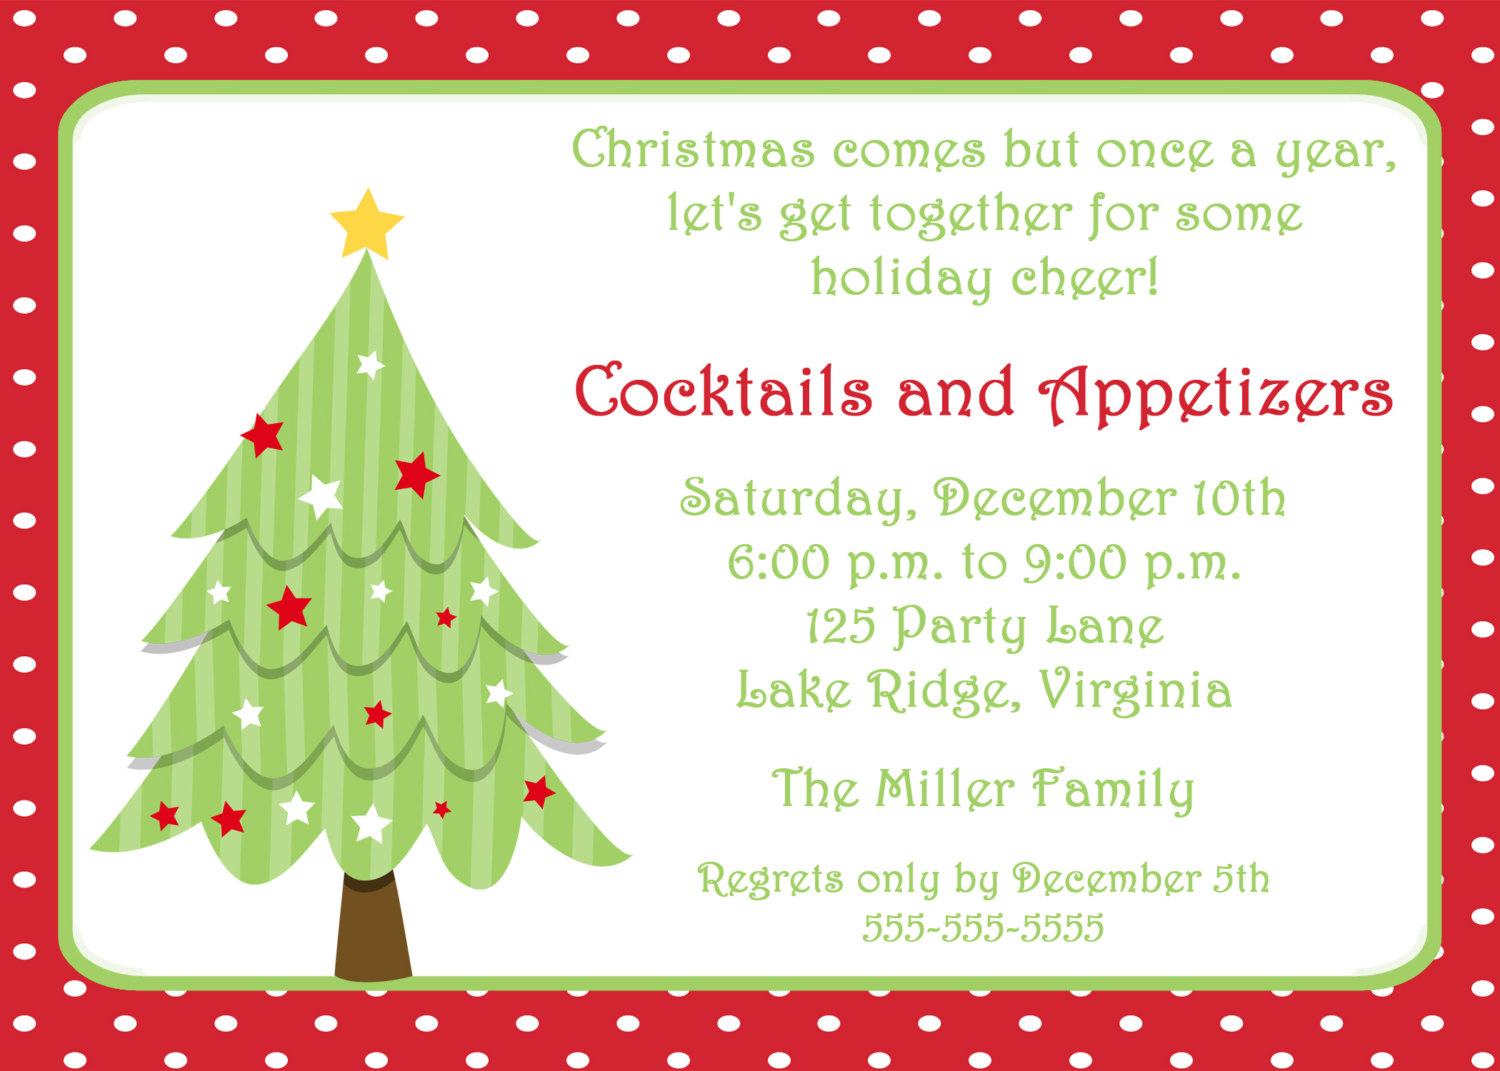 photo about Free Printable Christmas Party Invitation Templates titled 16 Printable Xmas Celebration Flyer Templates Pictures - Free of charge